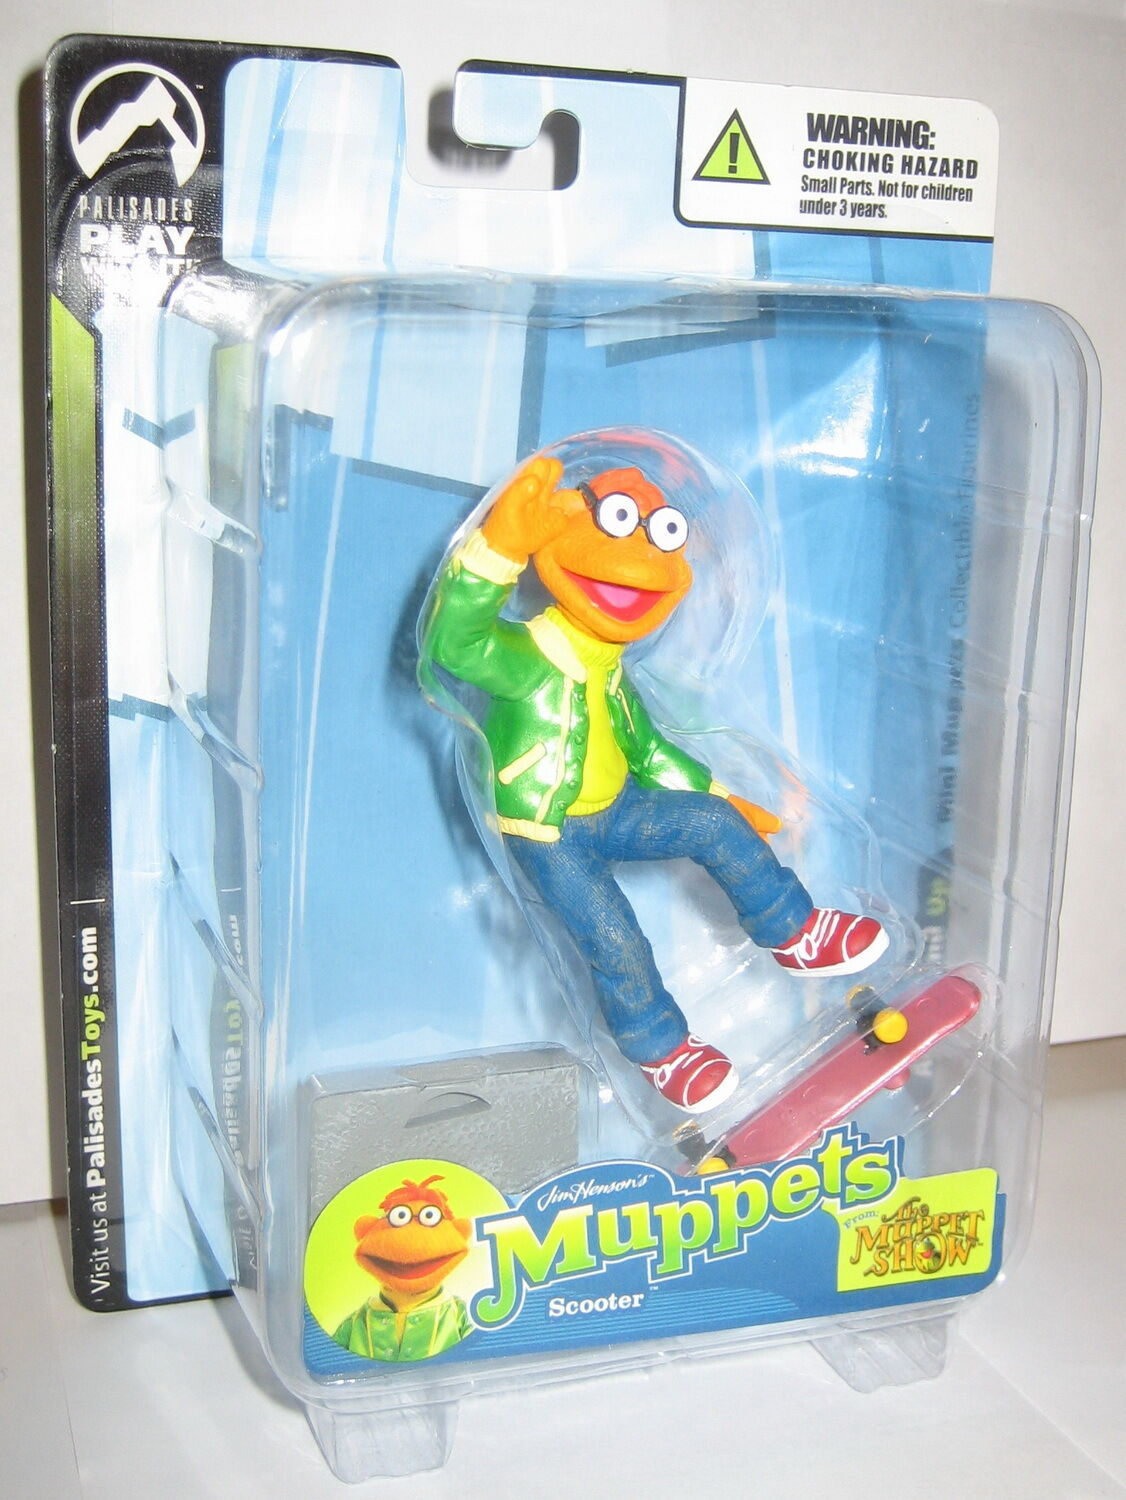 The Muppet Show Scooter Palisades Mini Figure Sealed Mailer